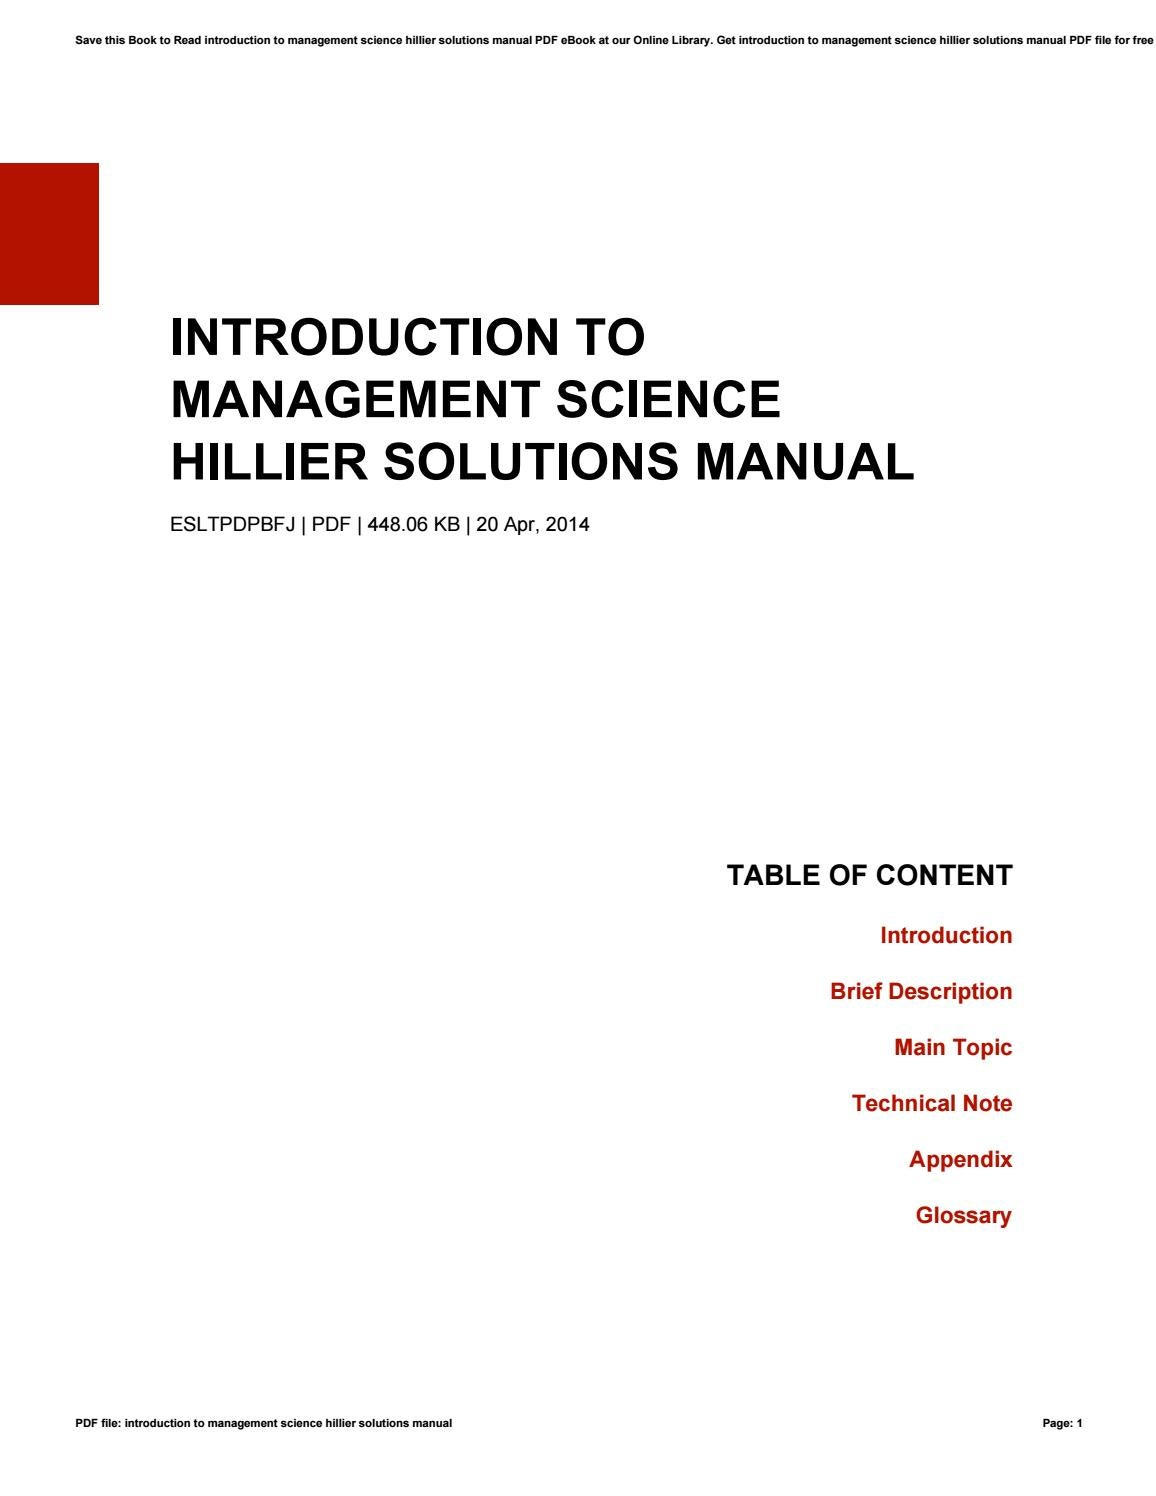 introduction to management science solution manual